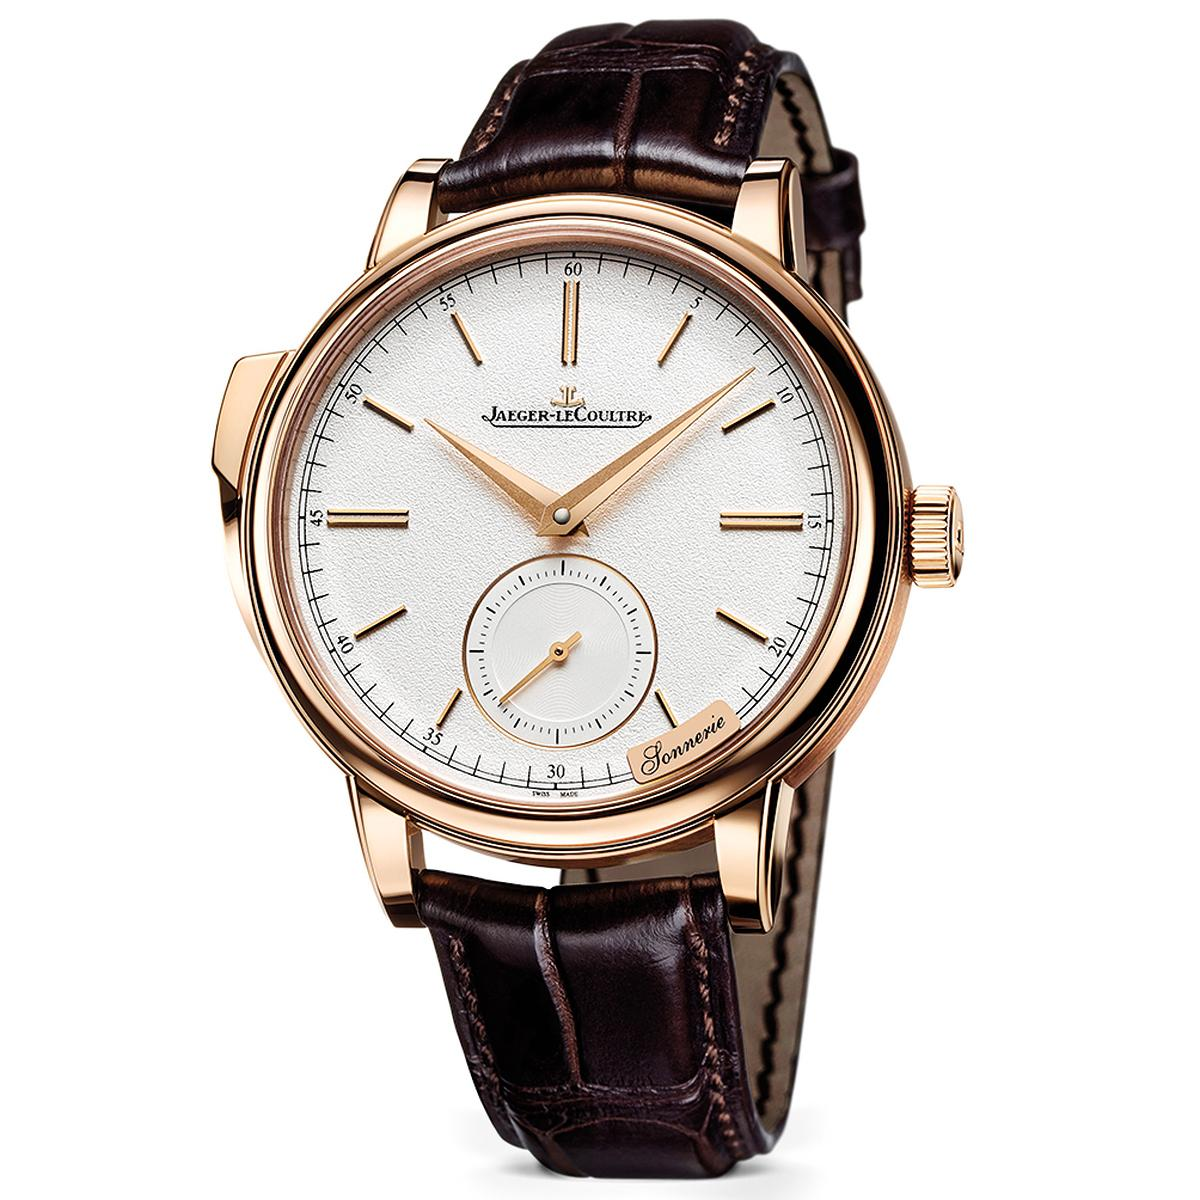 Jaeger-LeCoultre 39mm Master Grande Tradition Minute Repeater